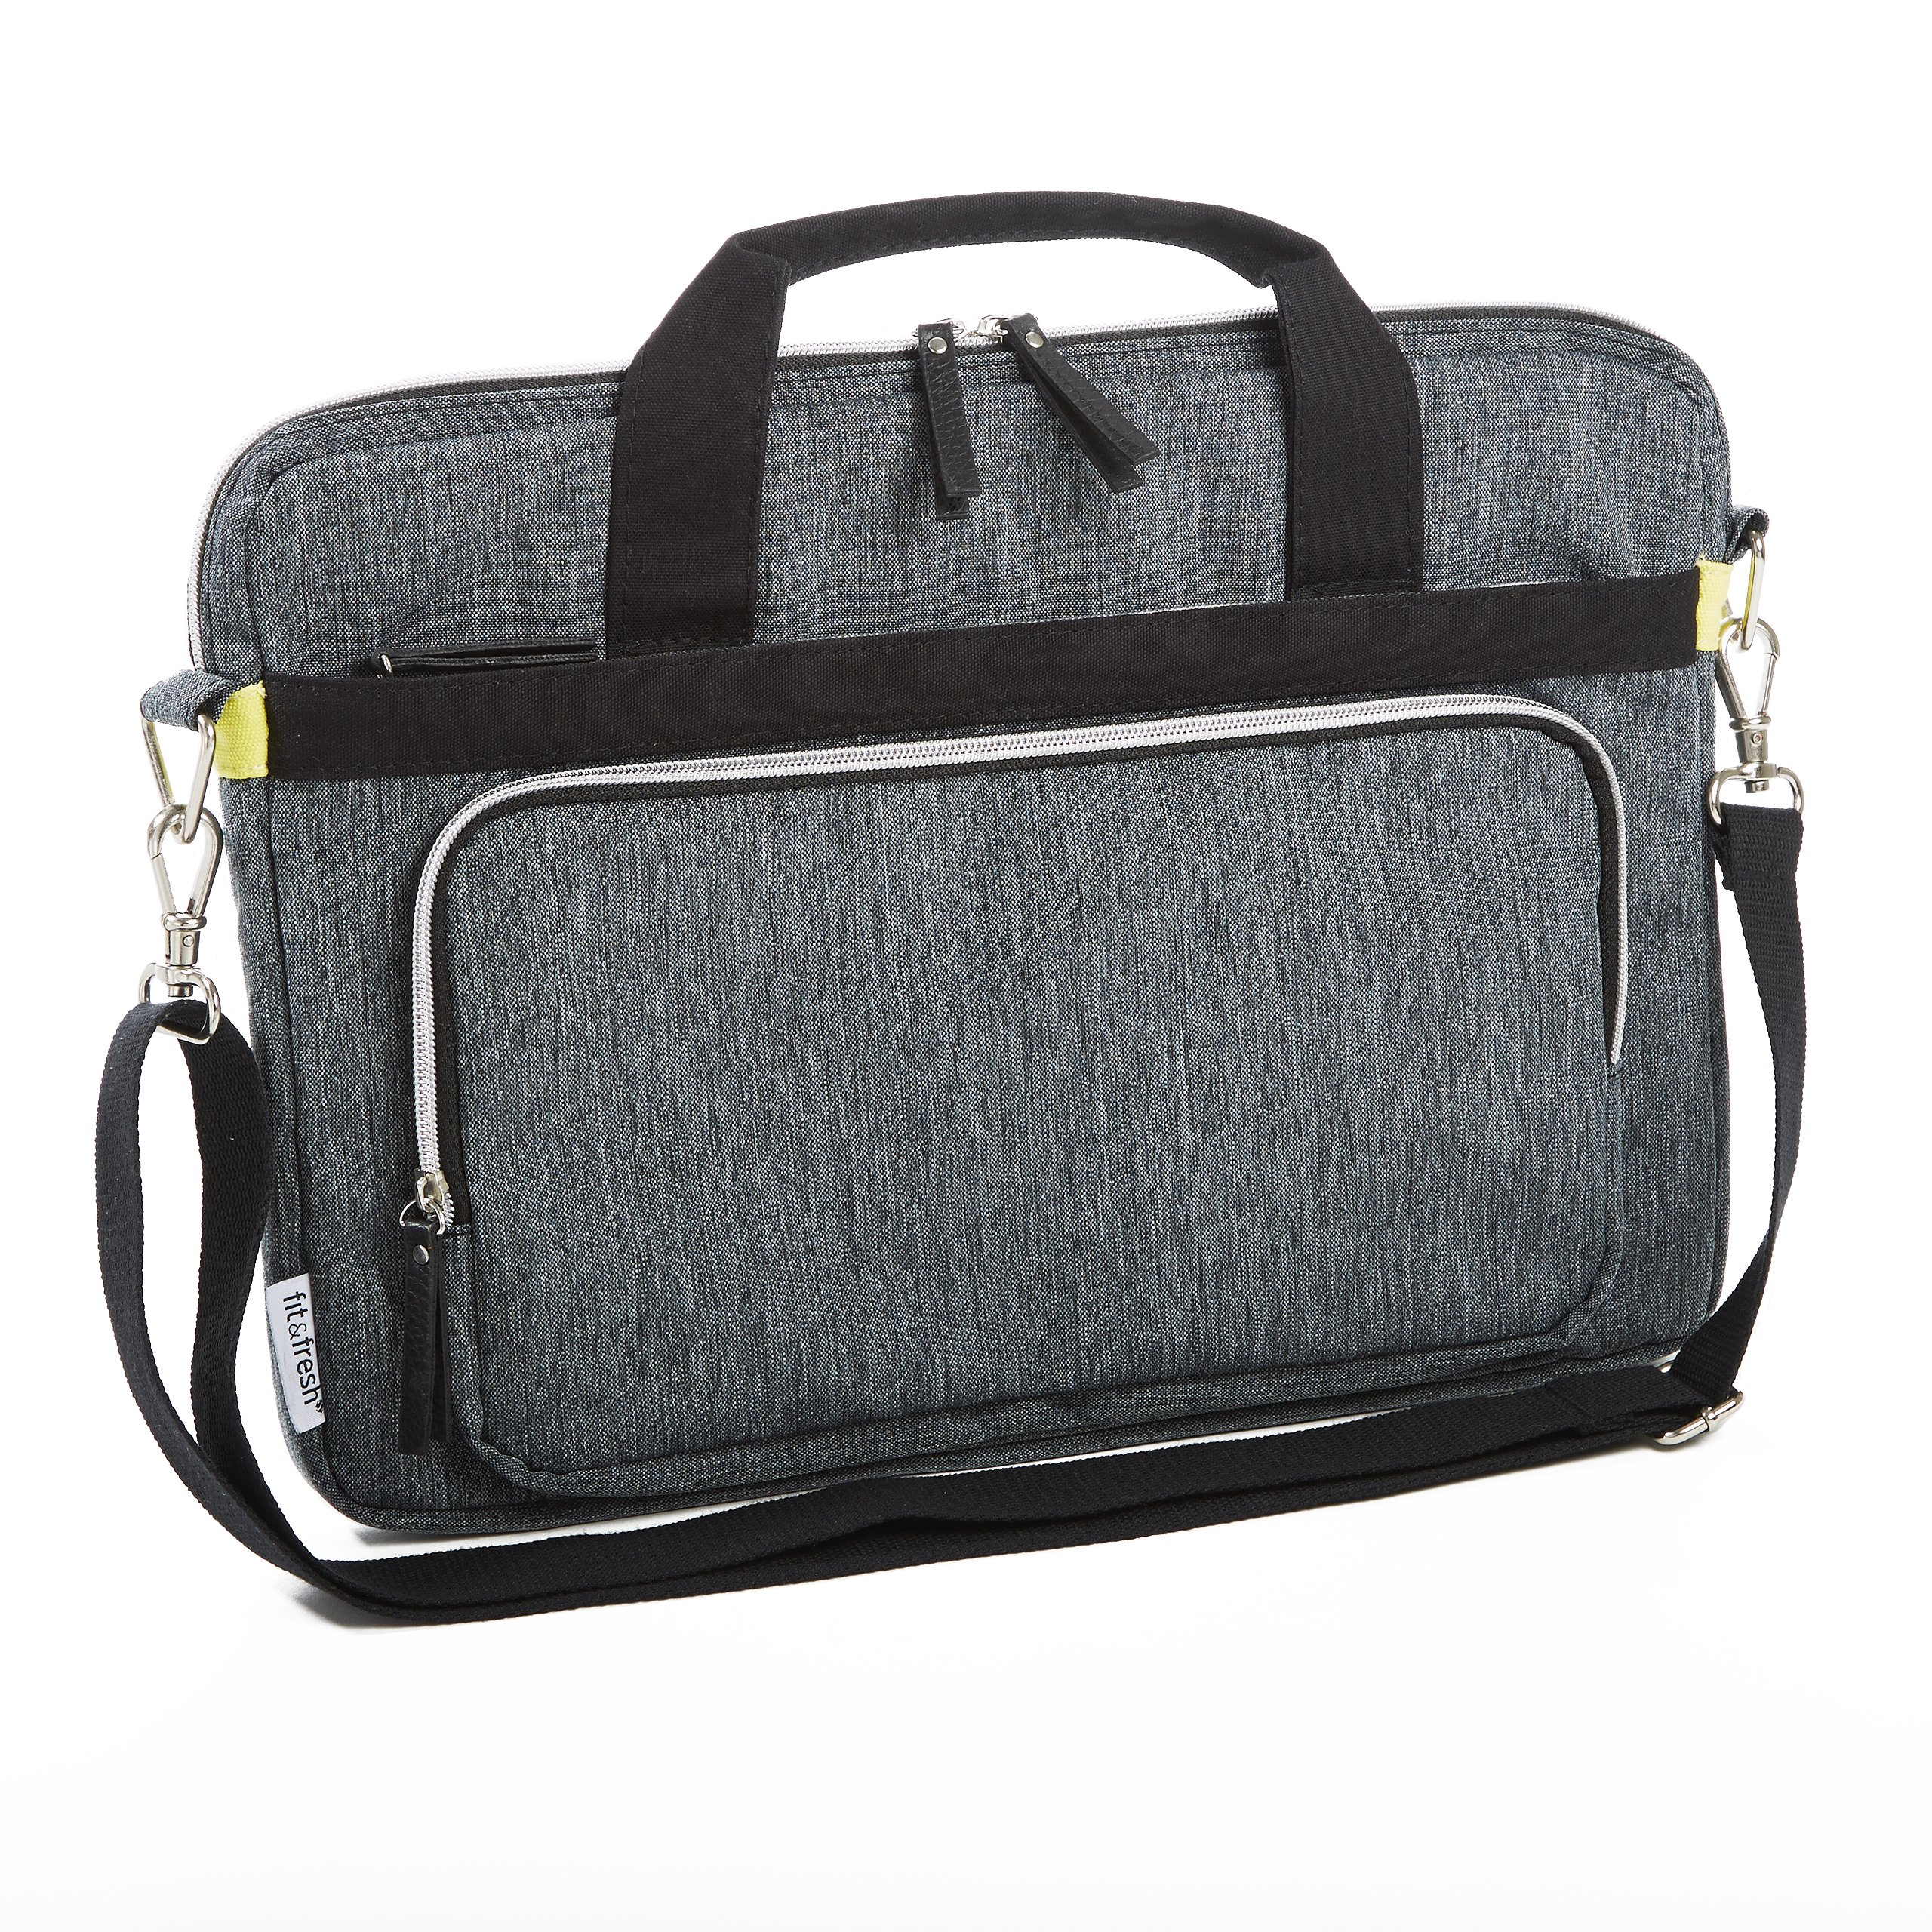 Fit & Fresh Messenger-Style Protective Laptop Bag with Shoulder Strap, Handles & Pocket, fits Apple/Microsoft/Acer/Samsung/Google/Lenovo with up to 15.6'' Displays, Space Dyed, Gray